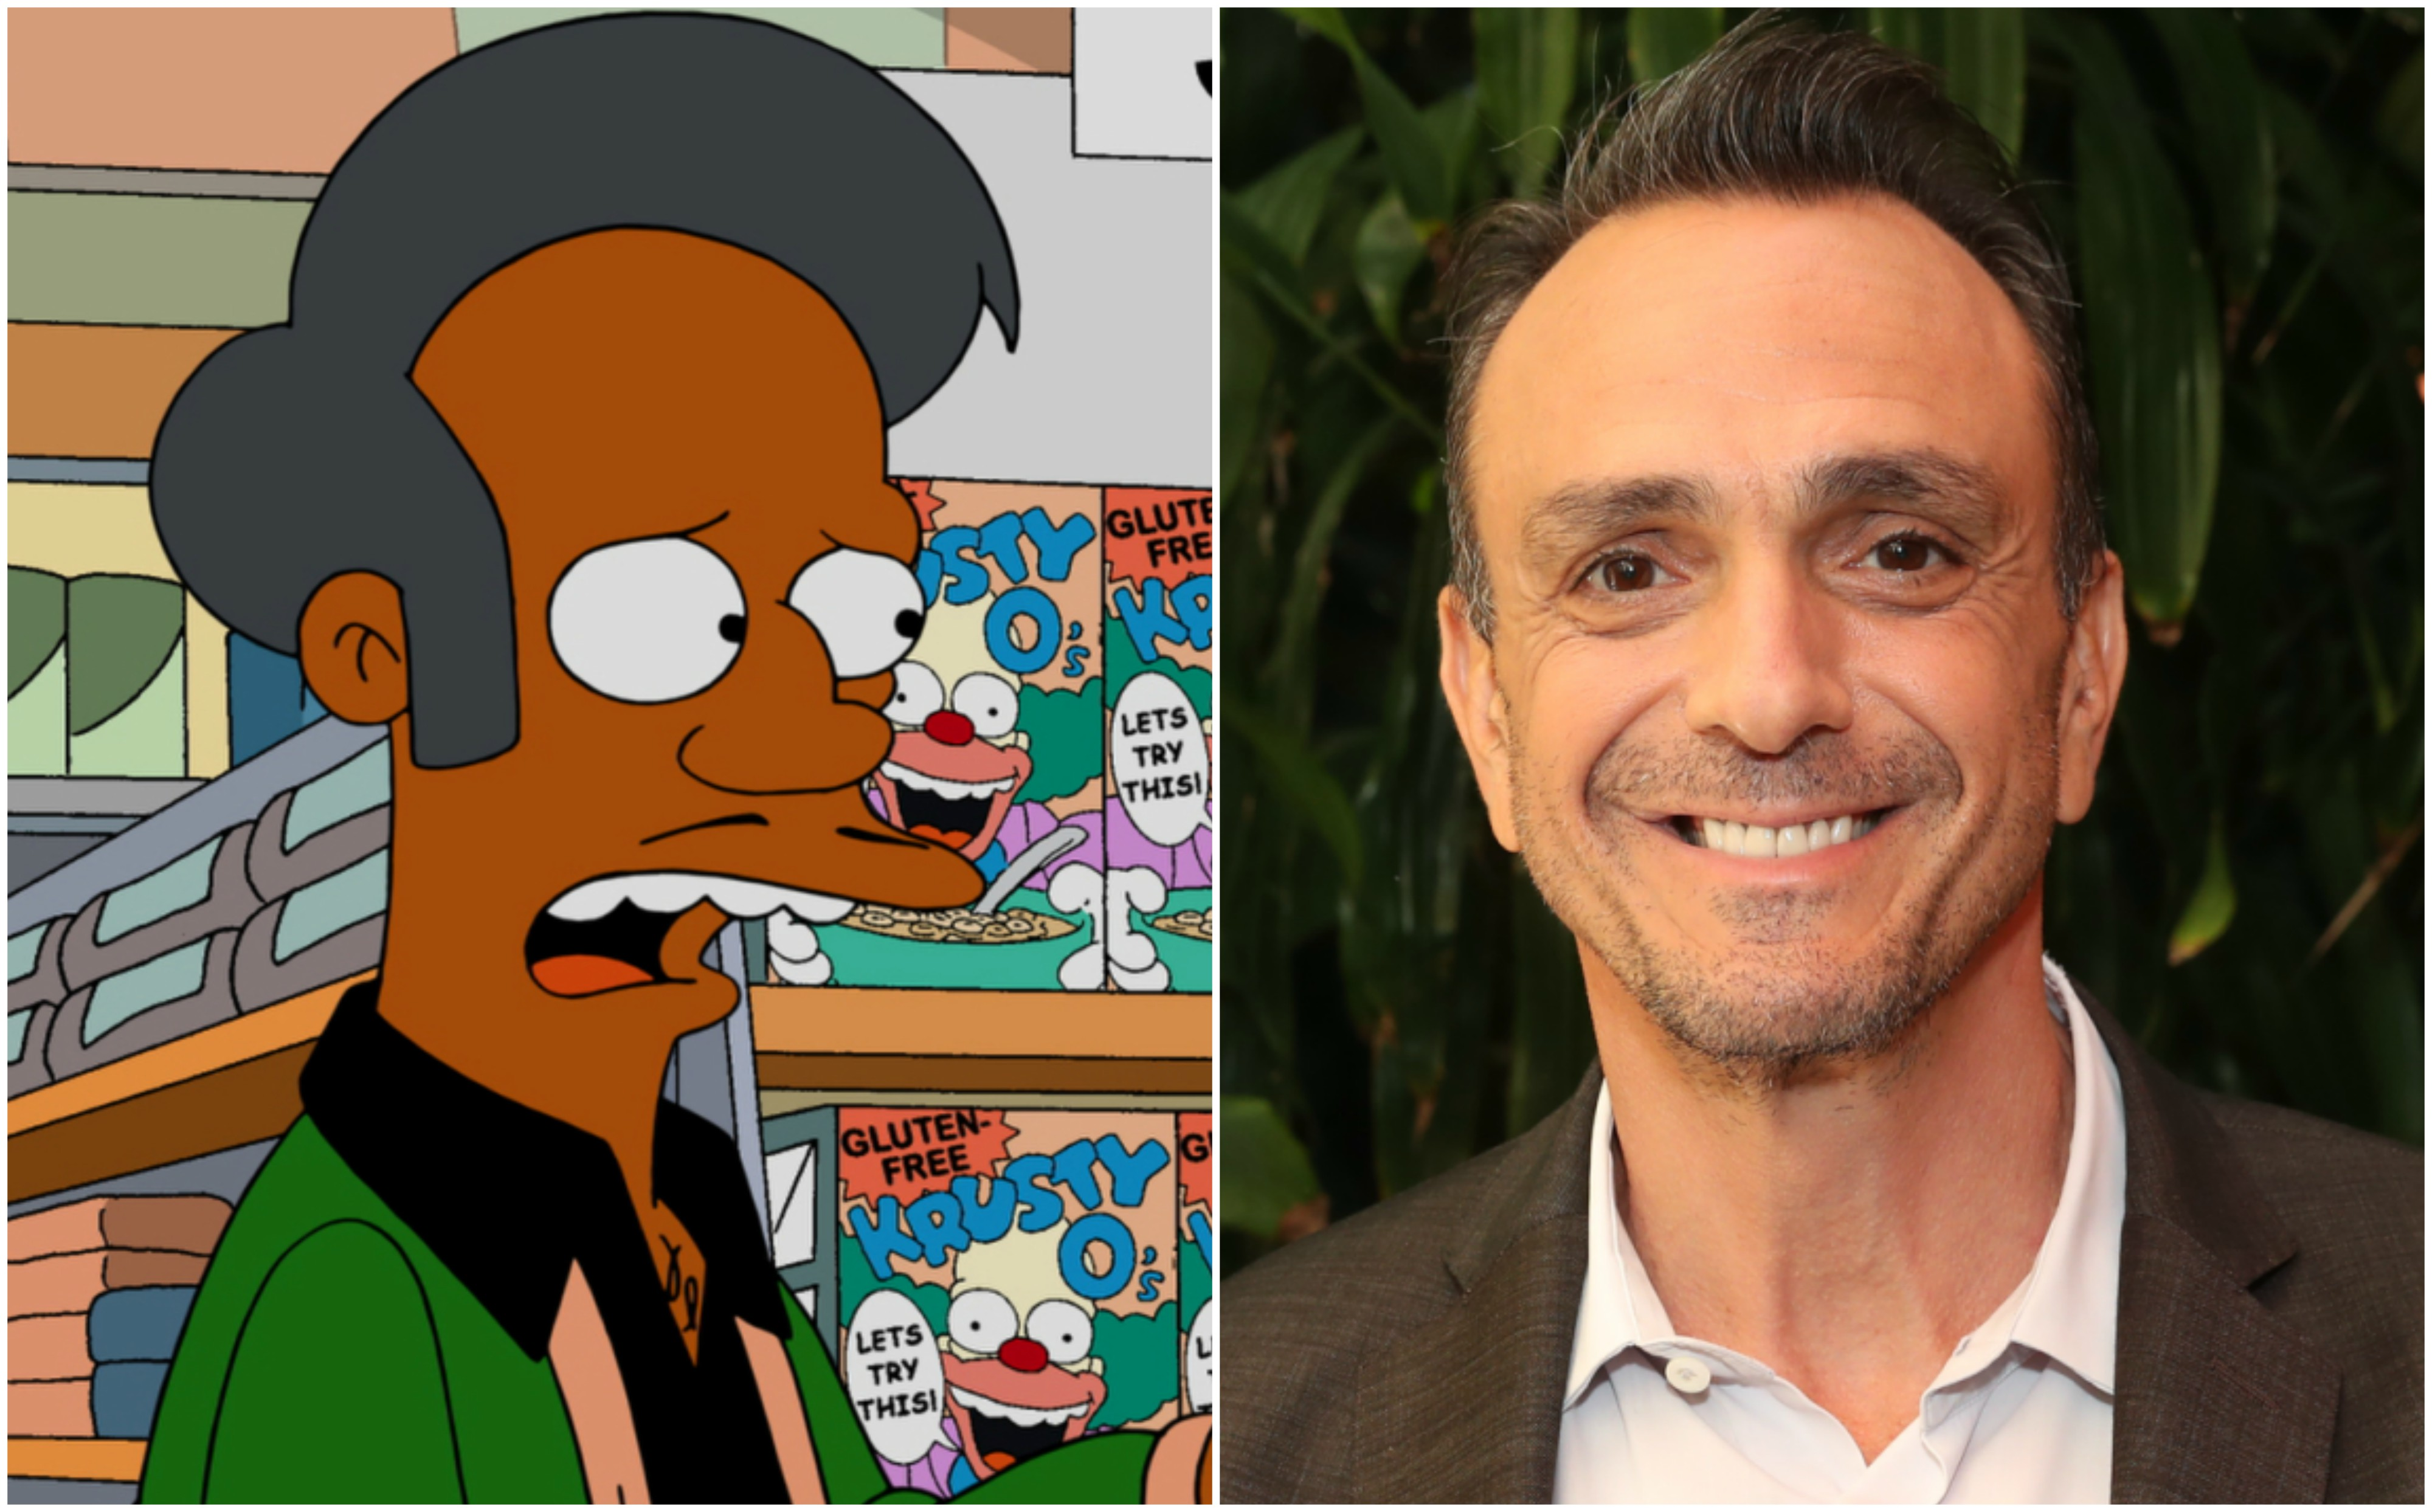 Hank Azaria on The Simpsons' Apu controversy: 'I'm willing to step aside'